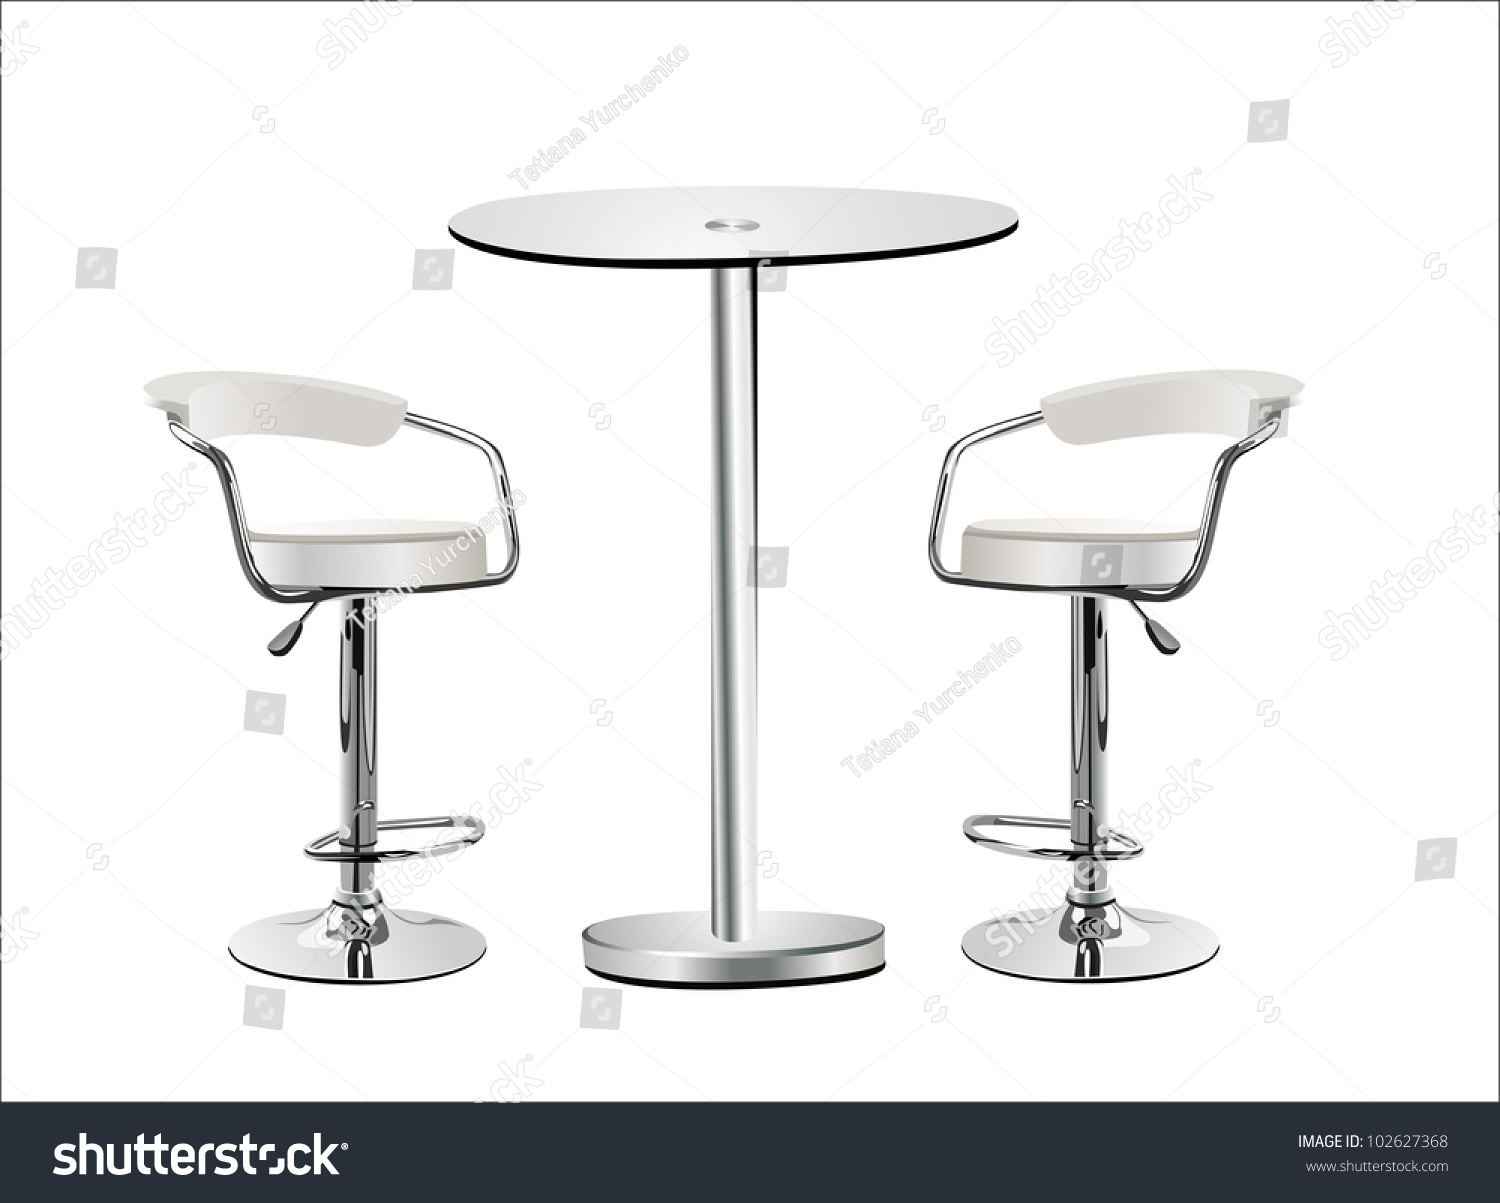 Amazing High Glass Top Table W Chairs On White Background.